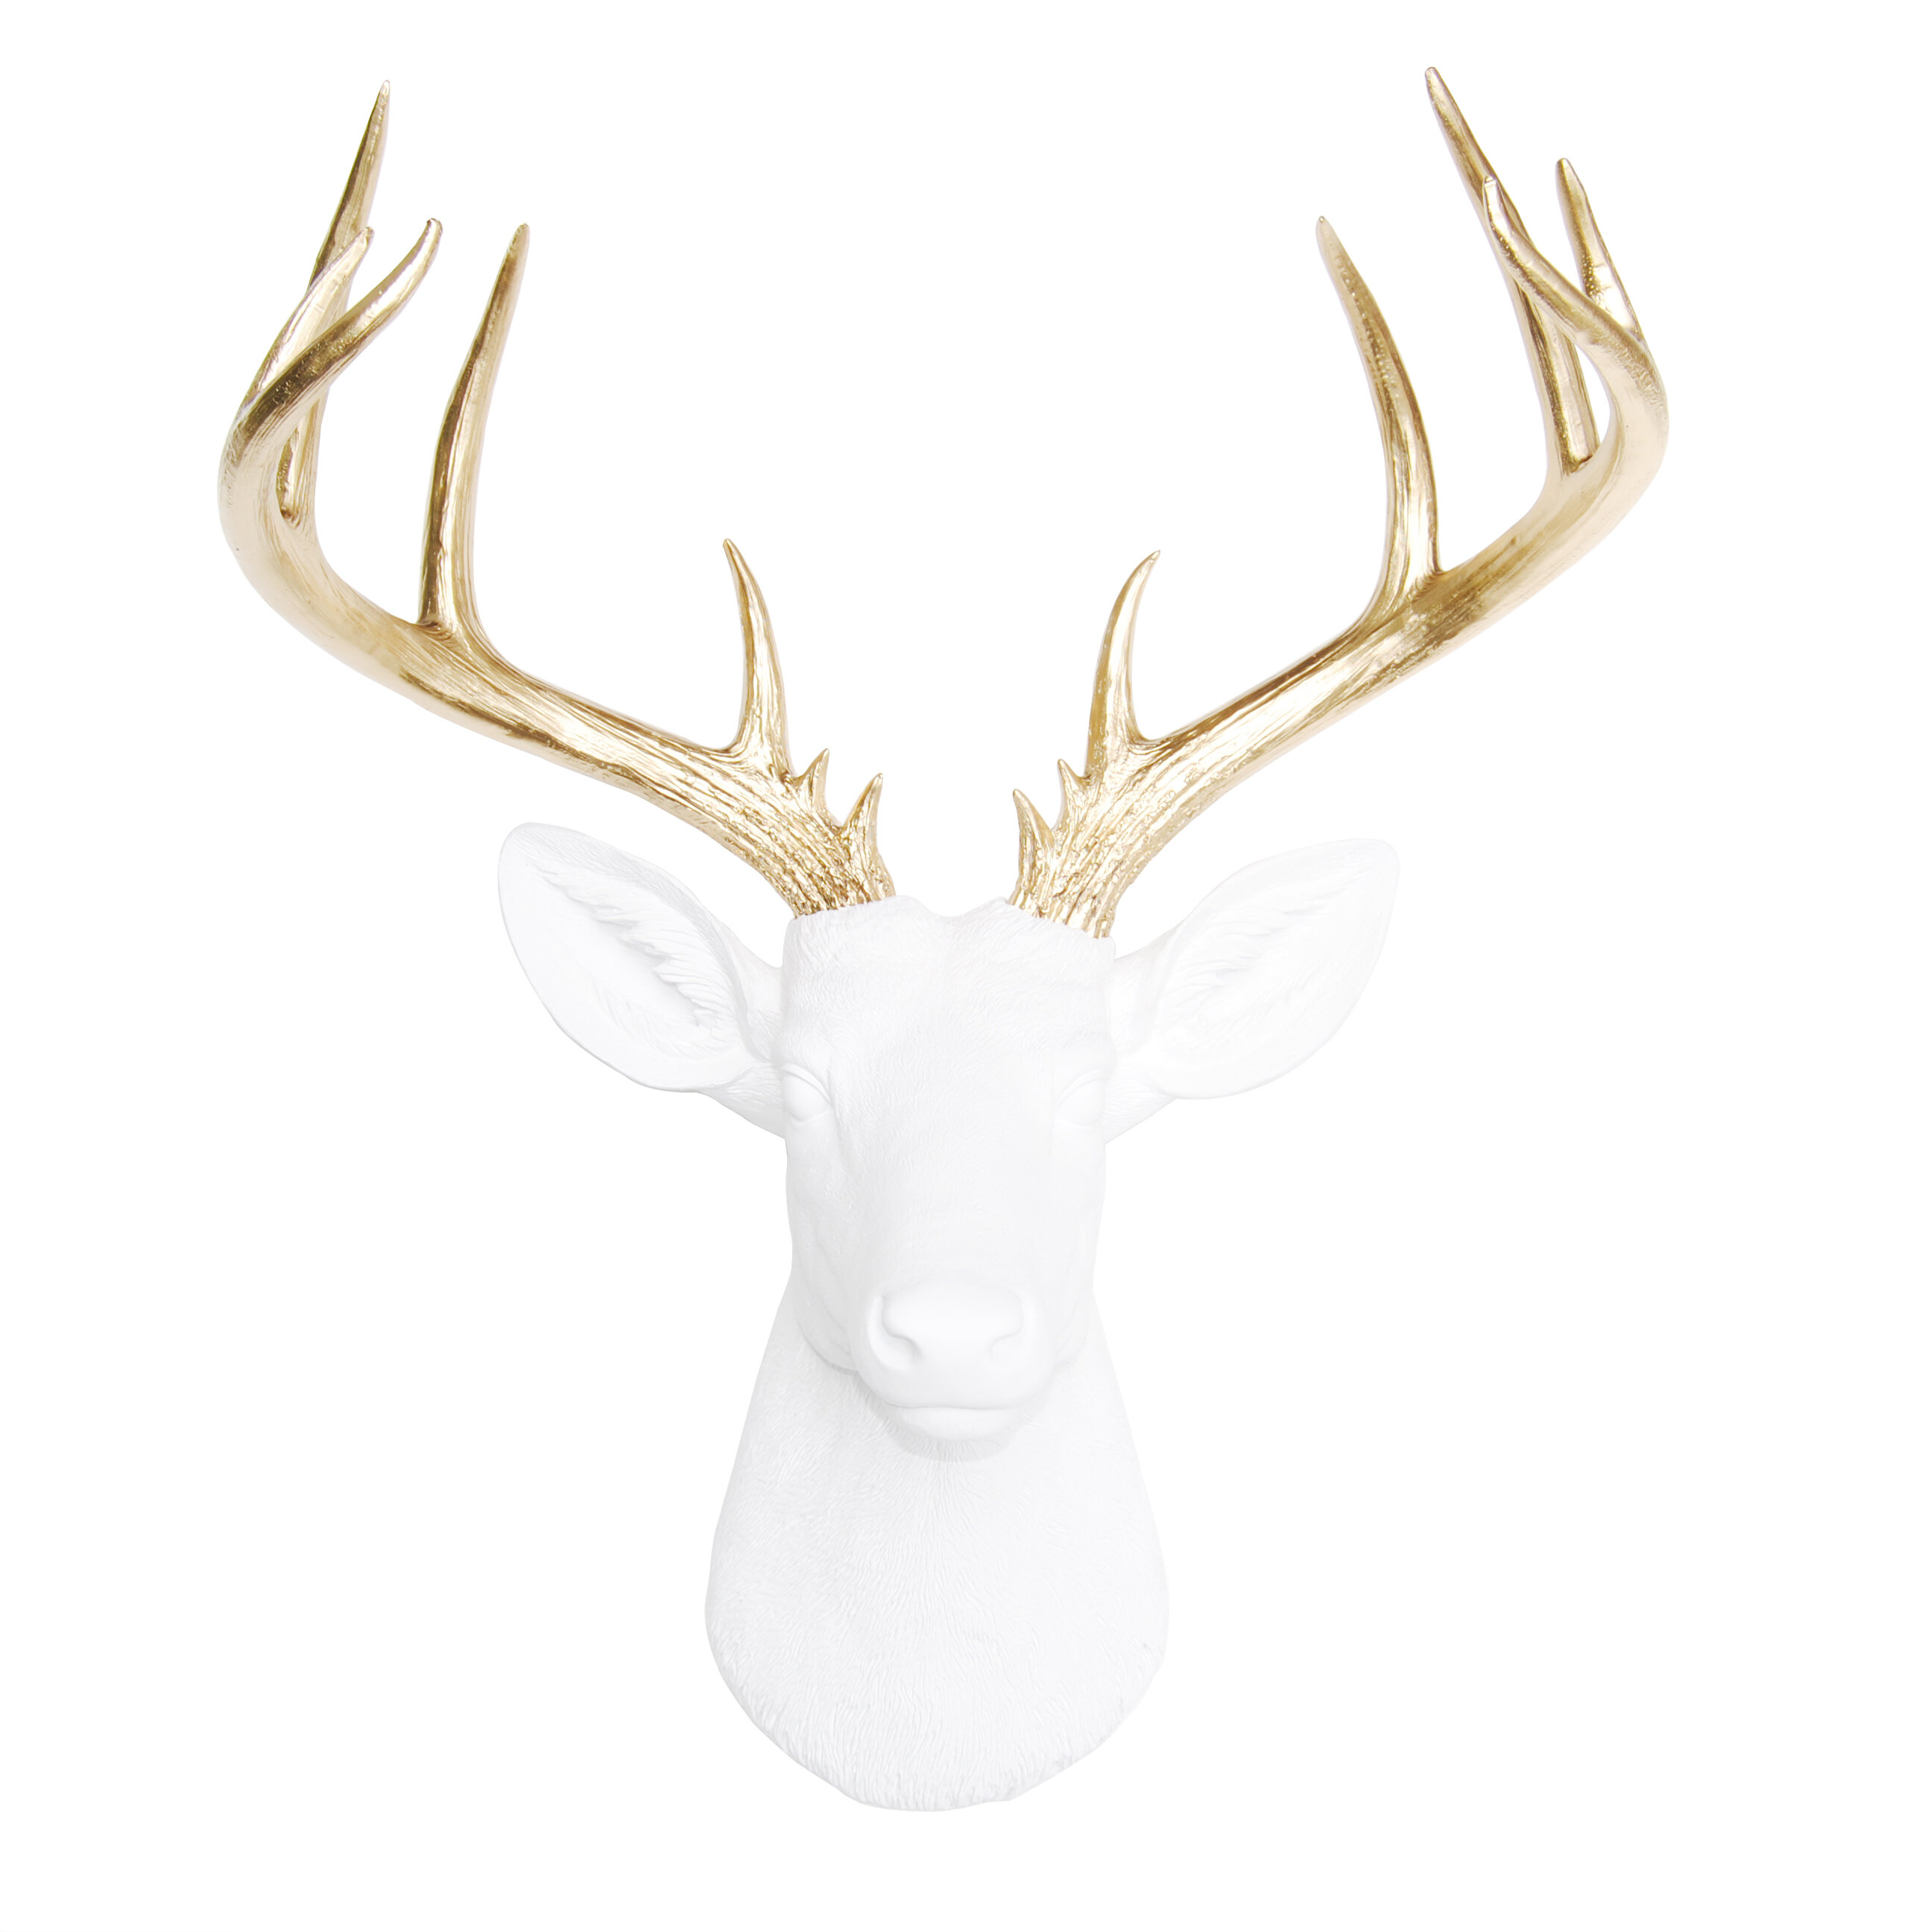 Brayden Studio Large Deer Head Faux Taxidermy Wall Décor